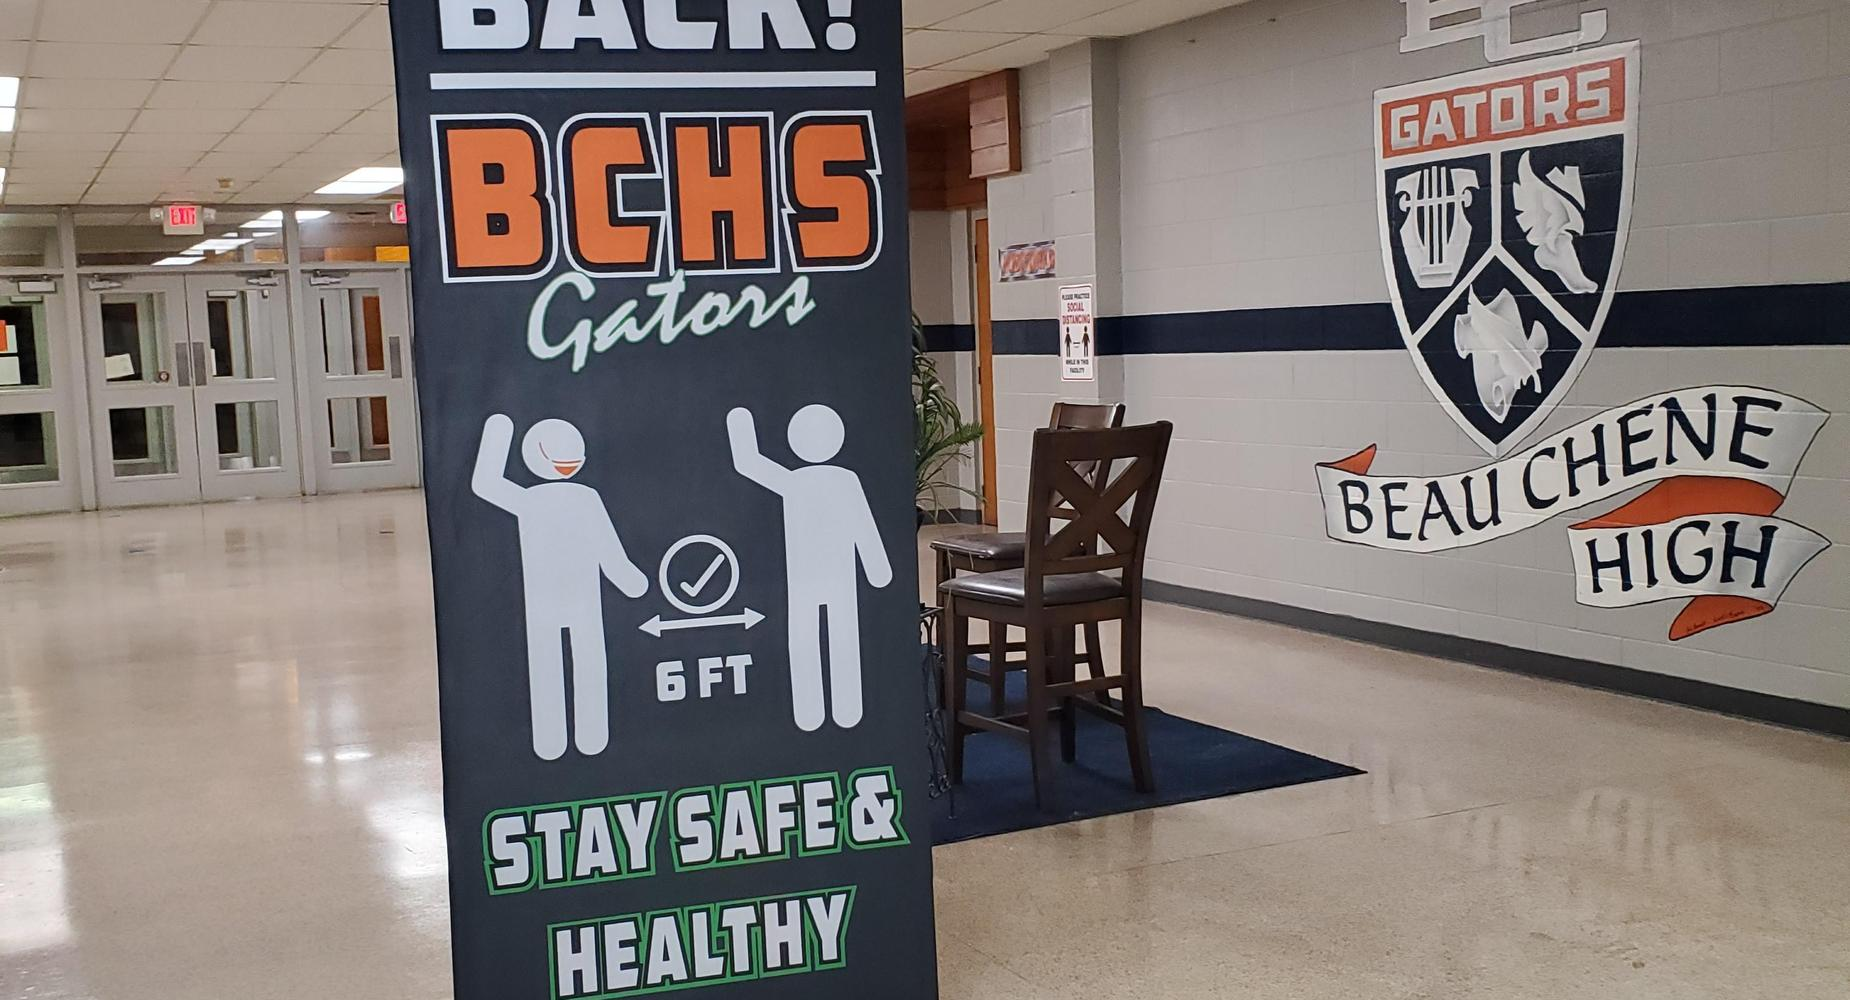 Welcome Back Gator Sign - Stay Safe & Healthy